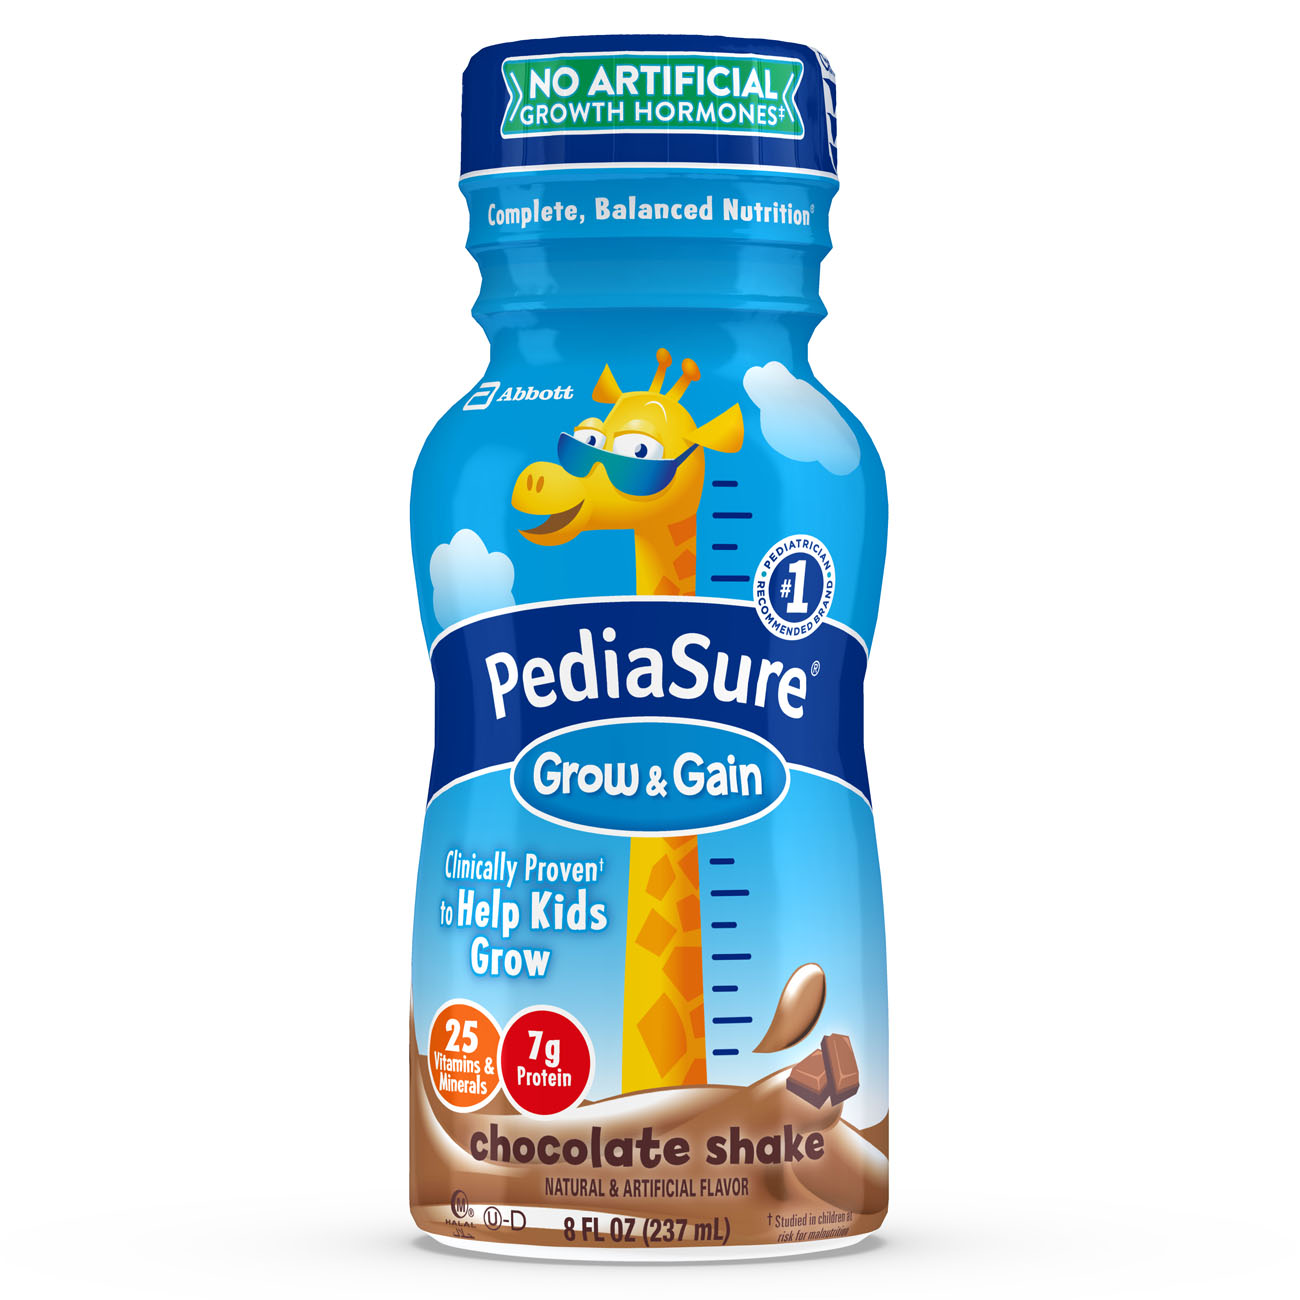 PediaSure Grow & Gain Nutrition Shake For Kids, Chocolate, 8 fl oz